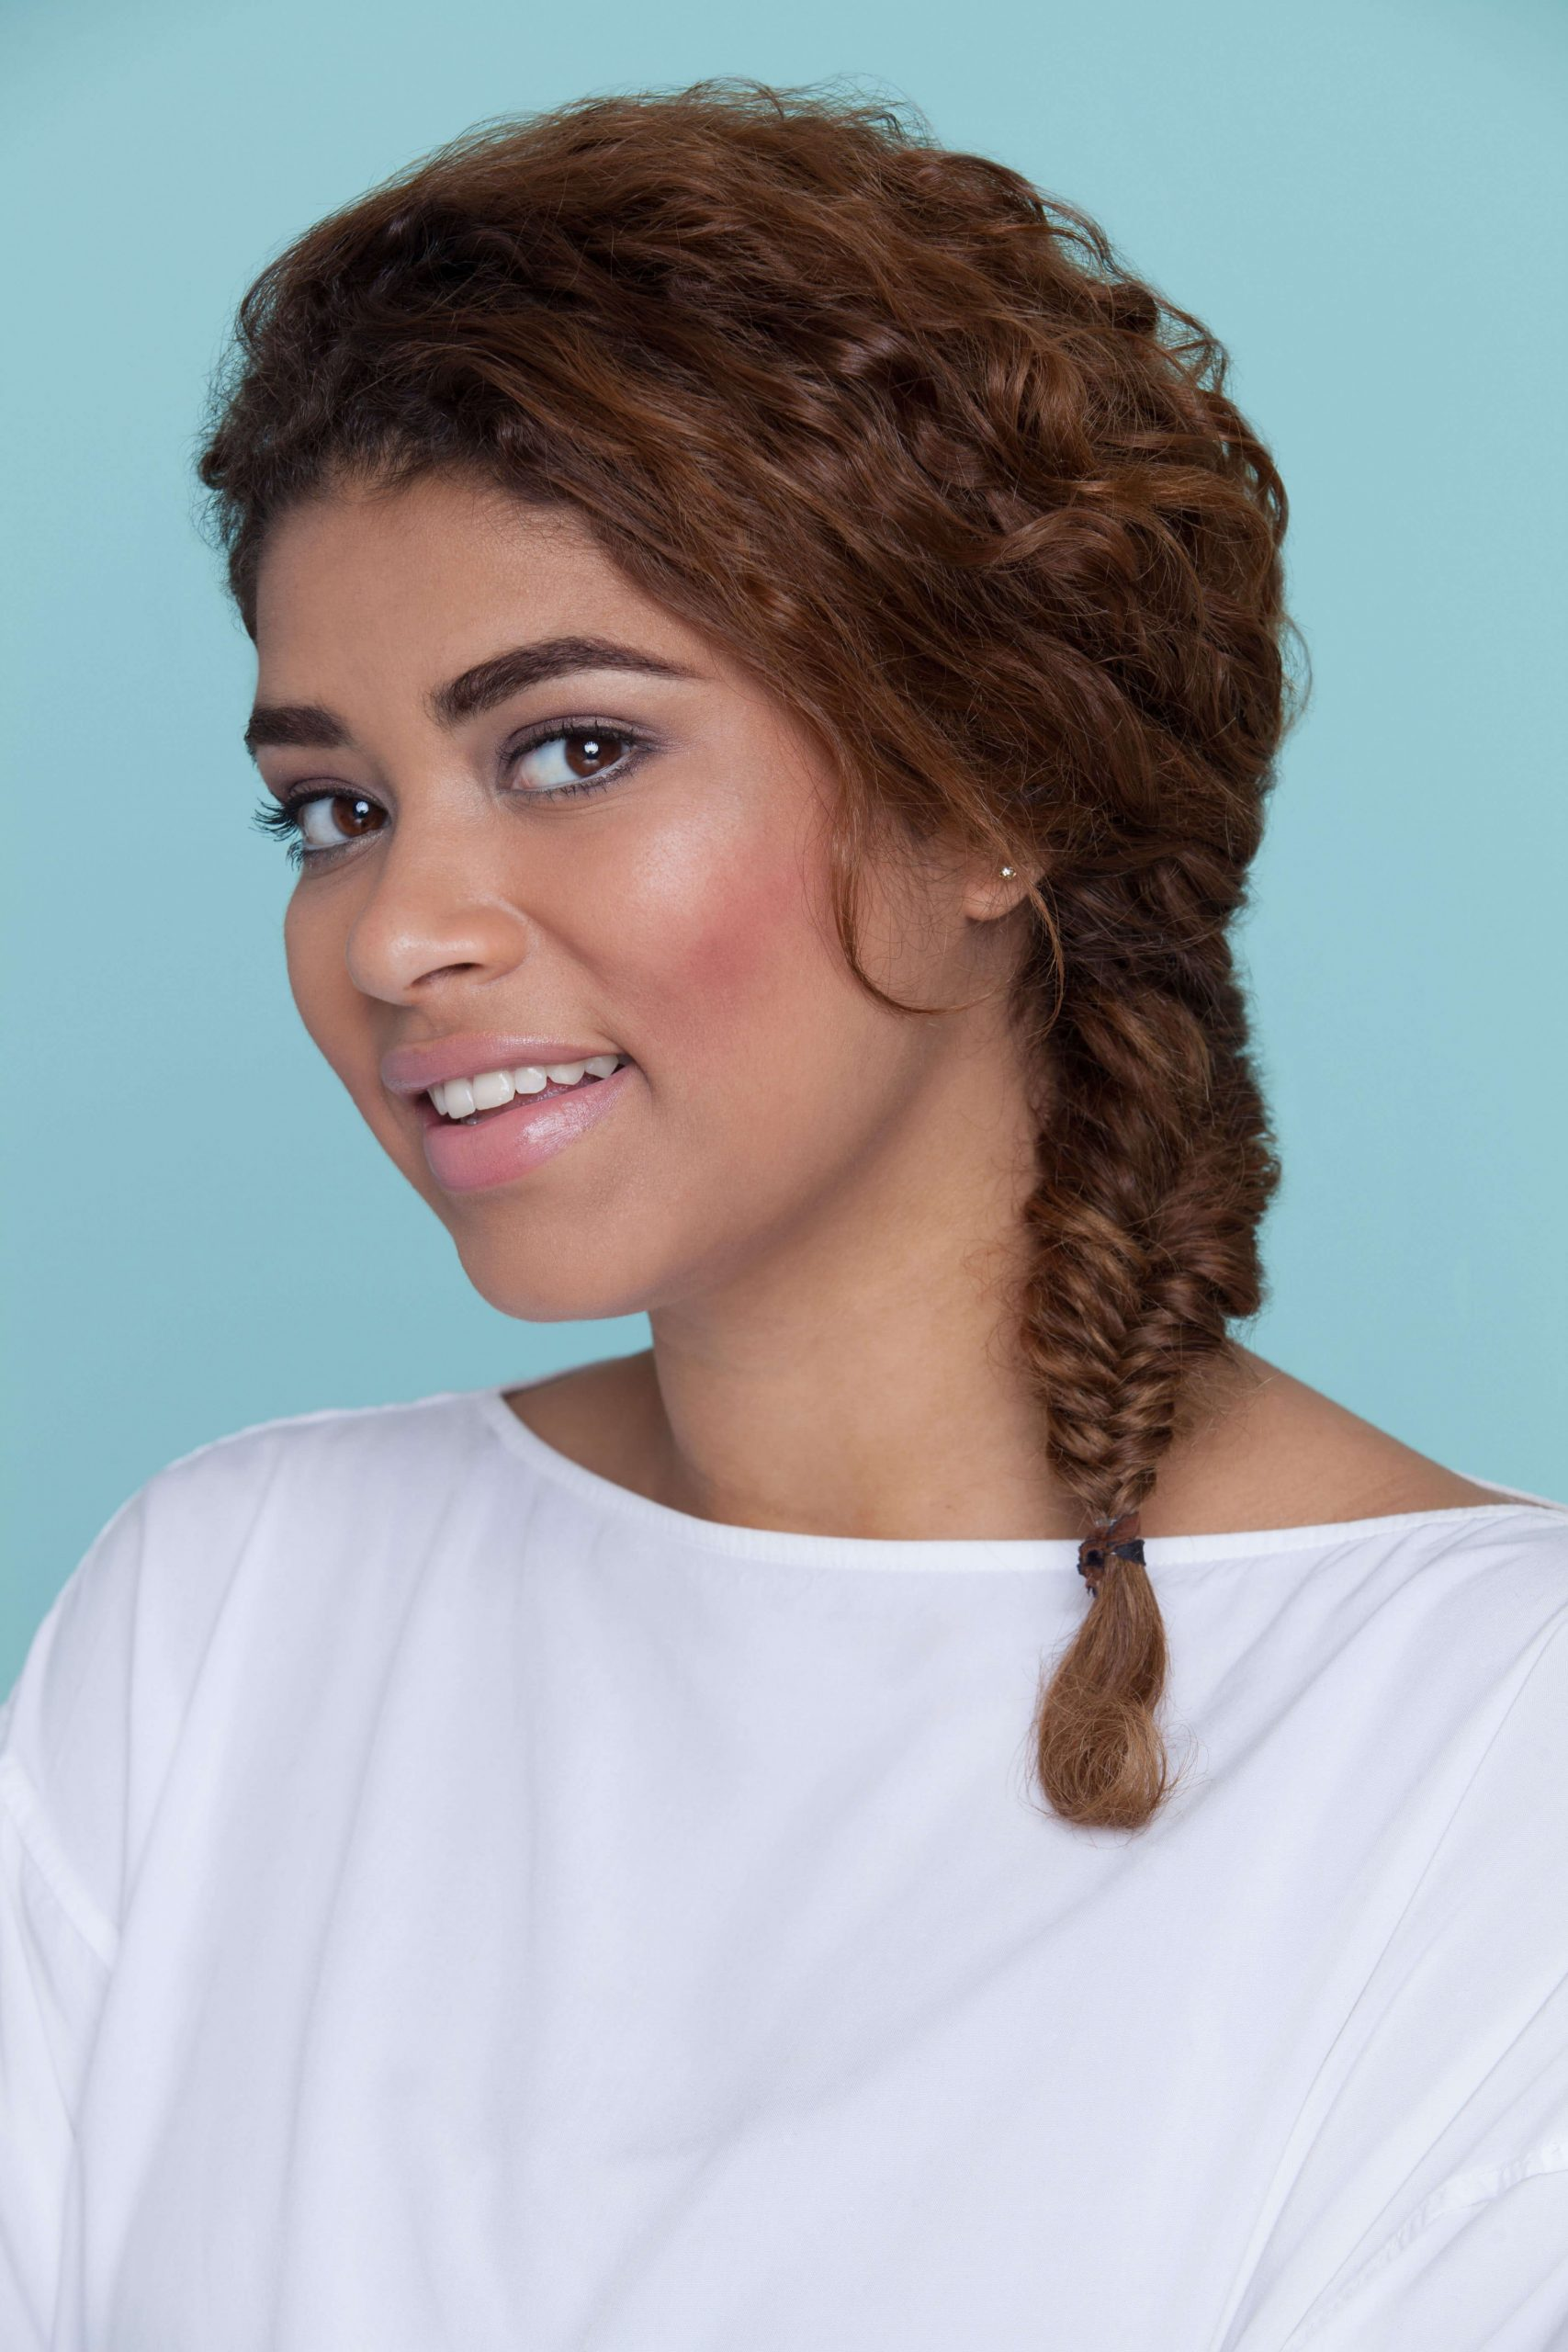 Thick Curly Hair: 8 Easy And Modern Hairstyles We Love Easy Hairstyles For Thick Curly Hair